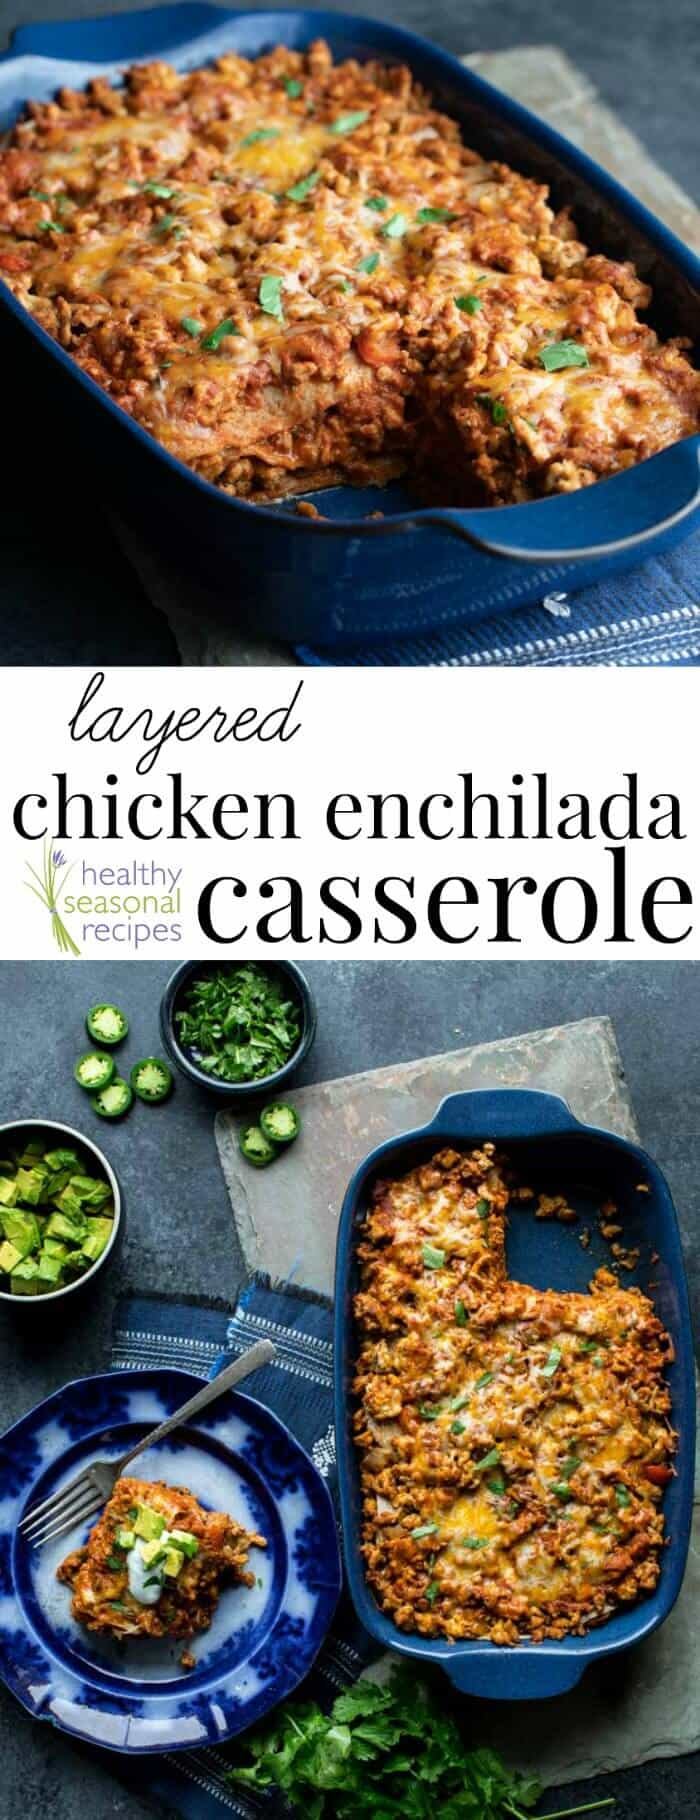 layered chicken enchilada casserole